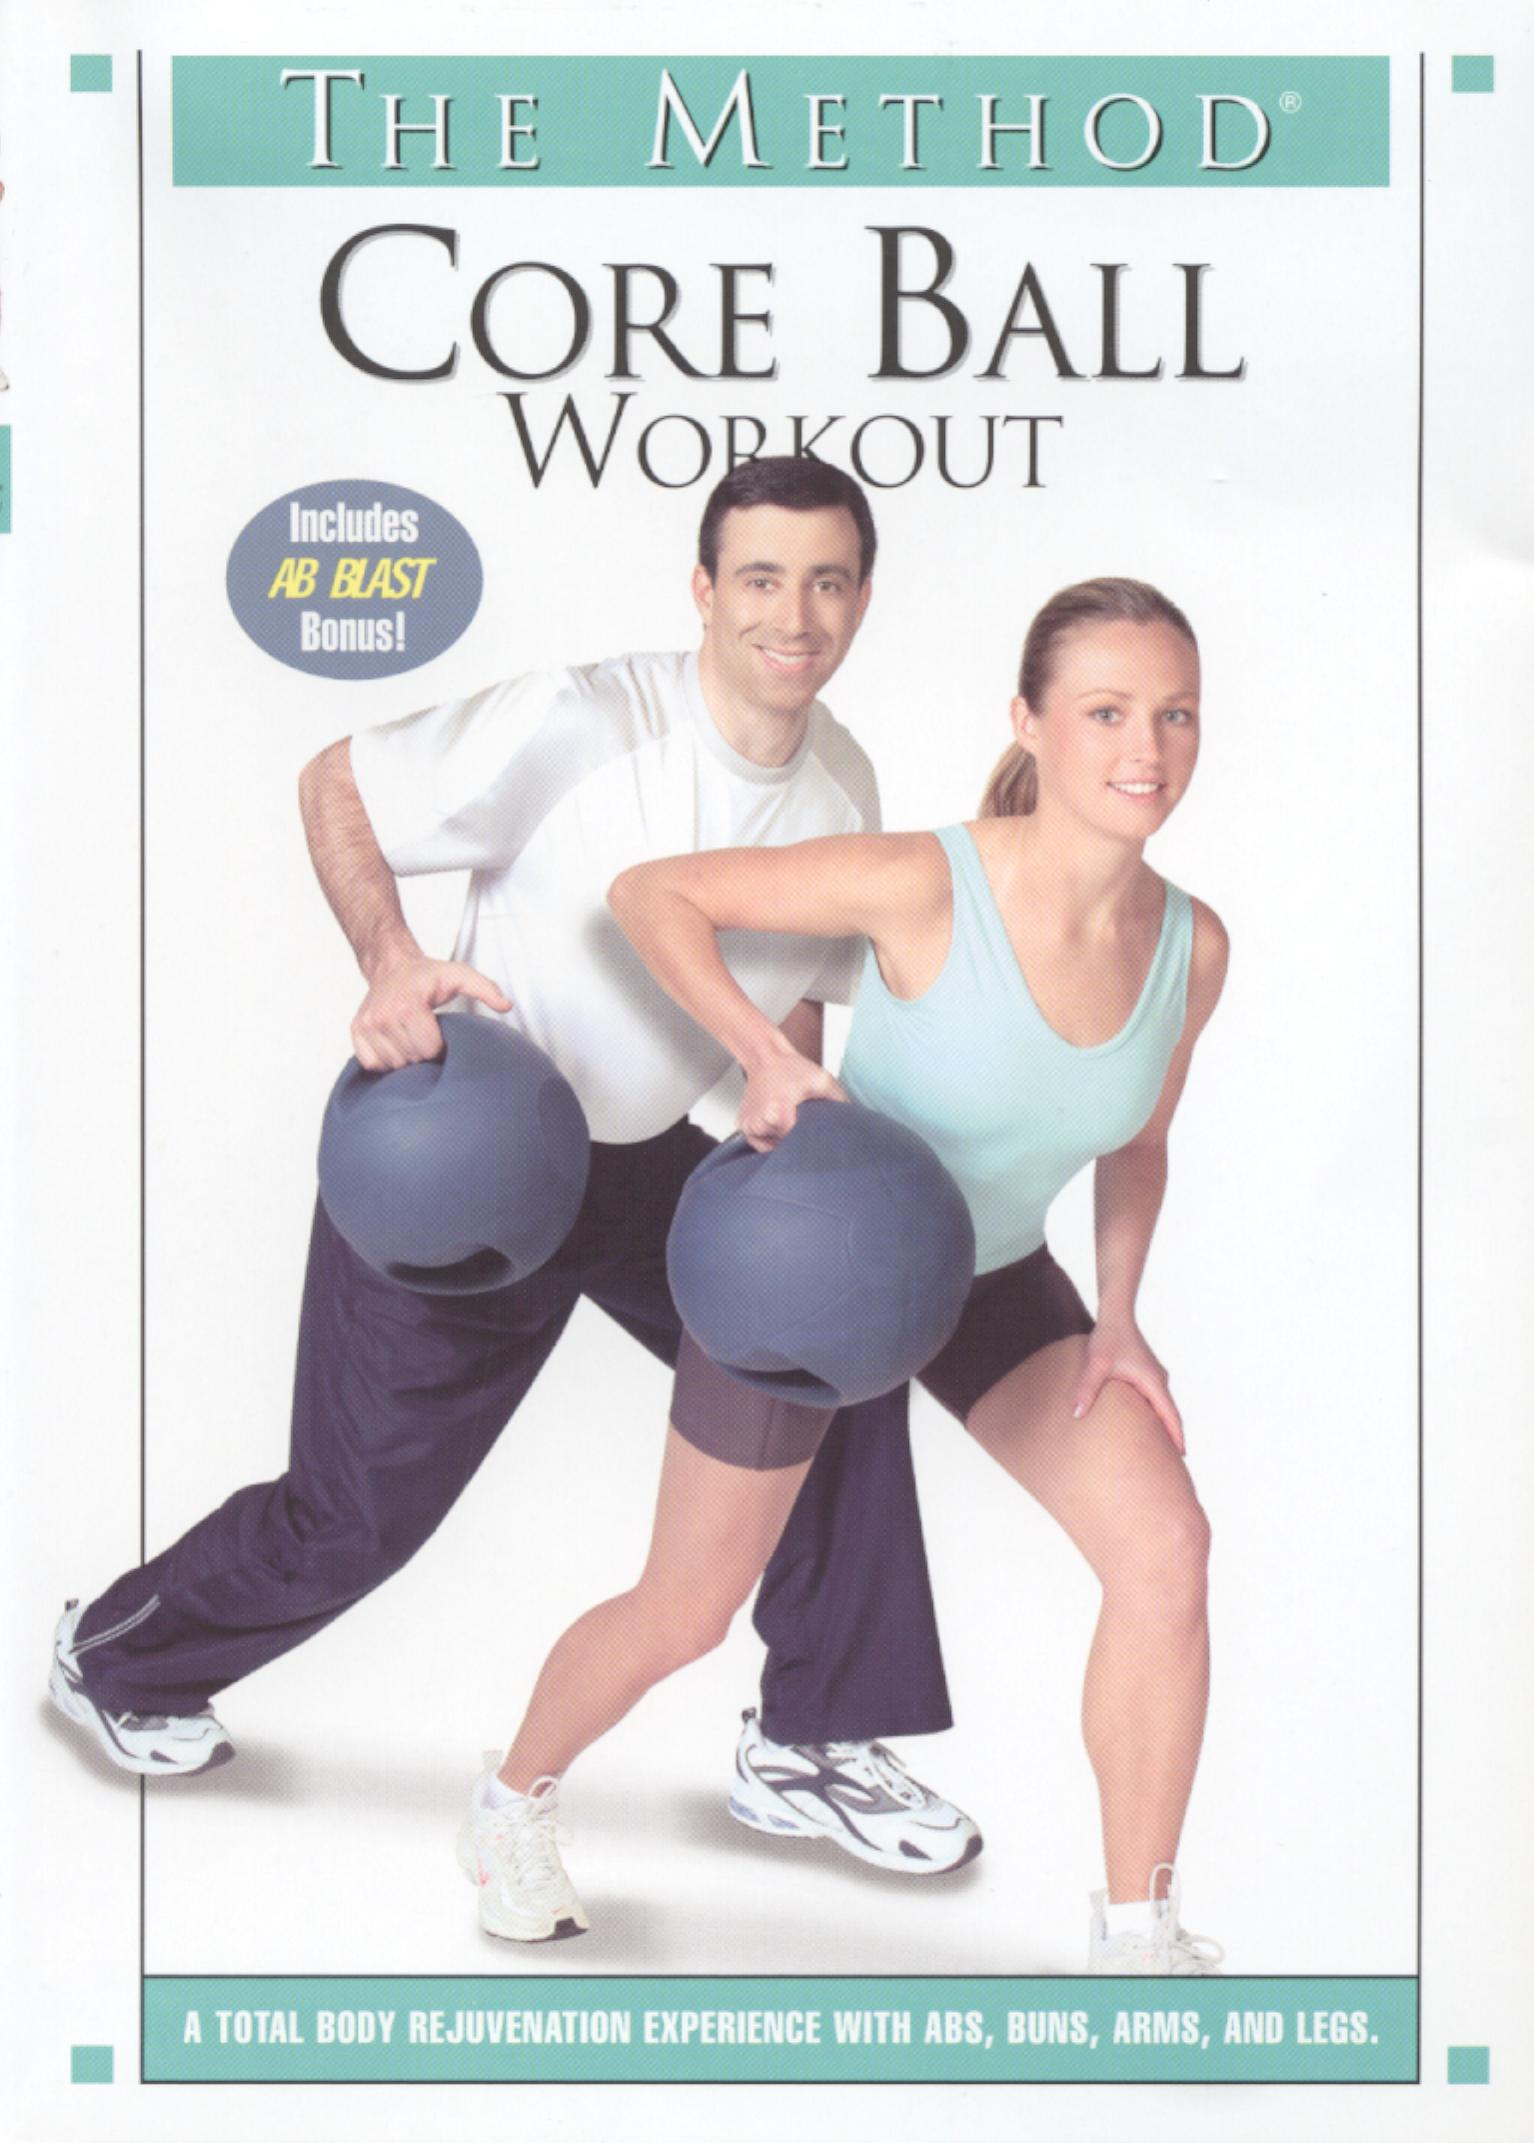 The Method: Core Ball Workout